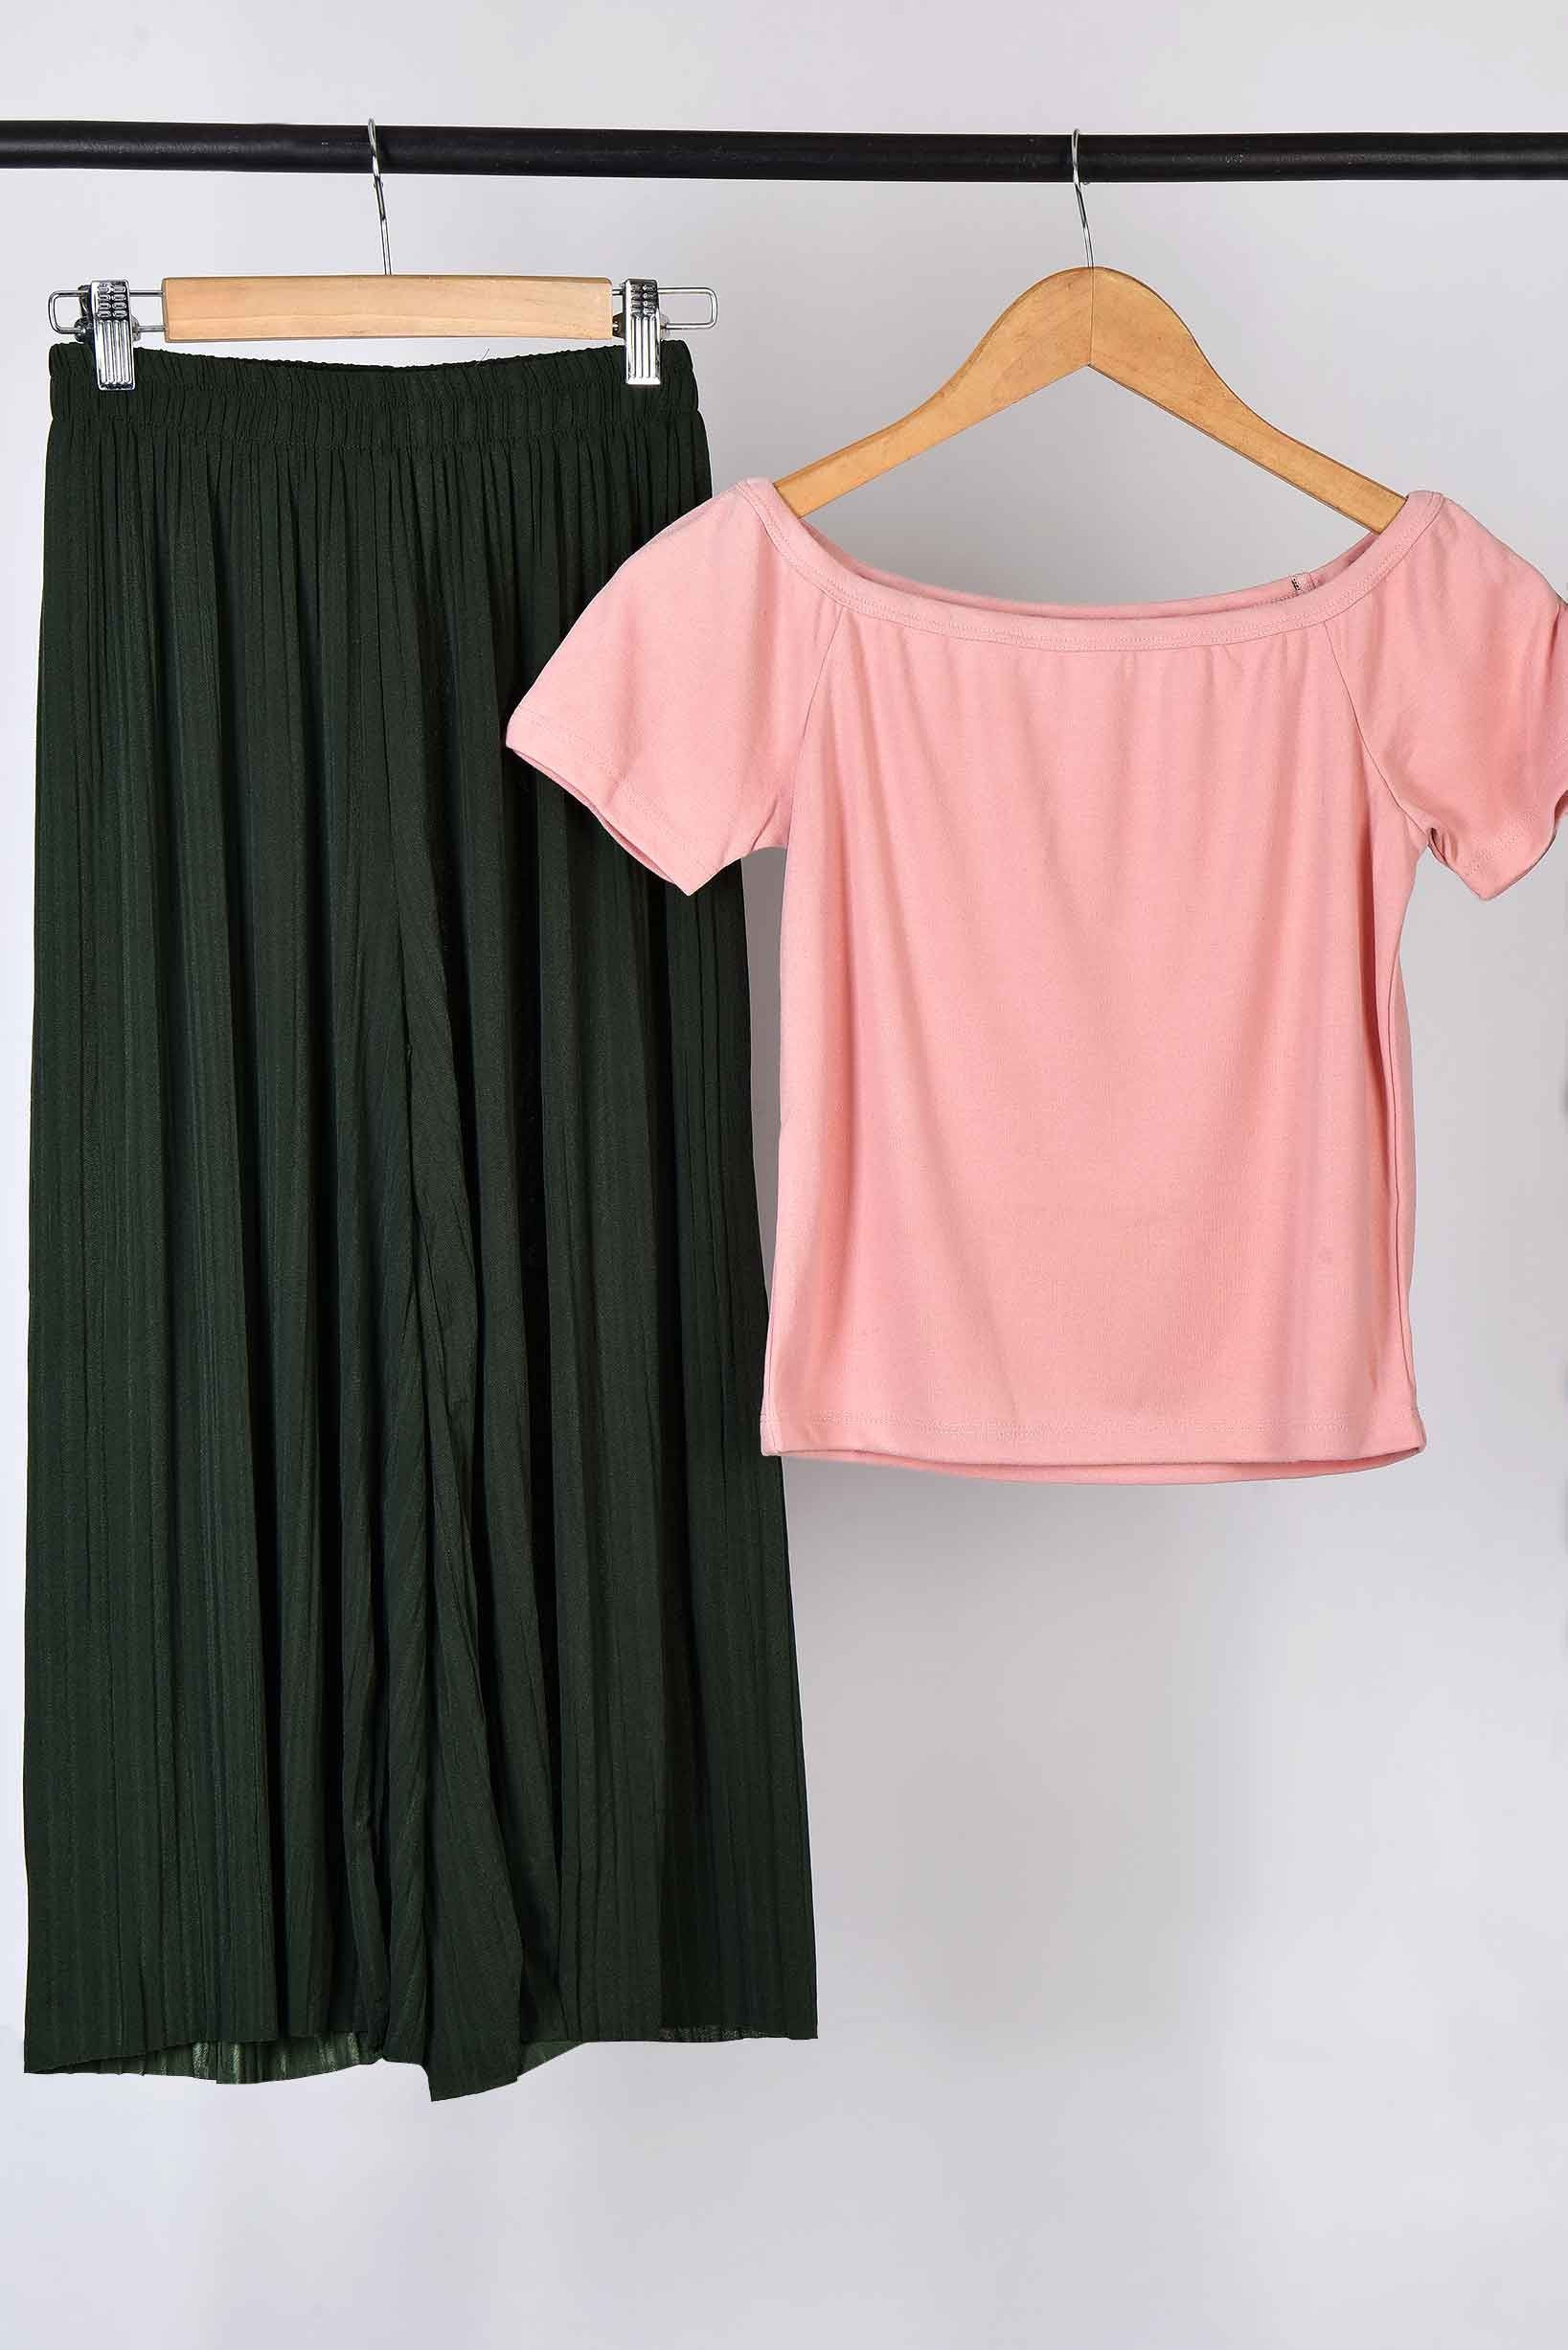 Set- Pink top with green trouser